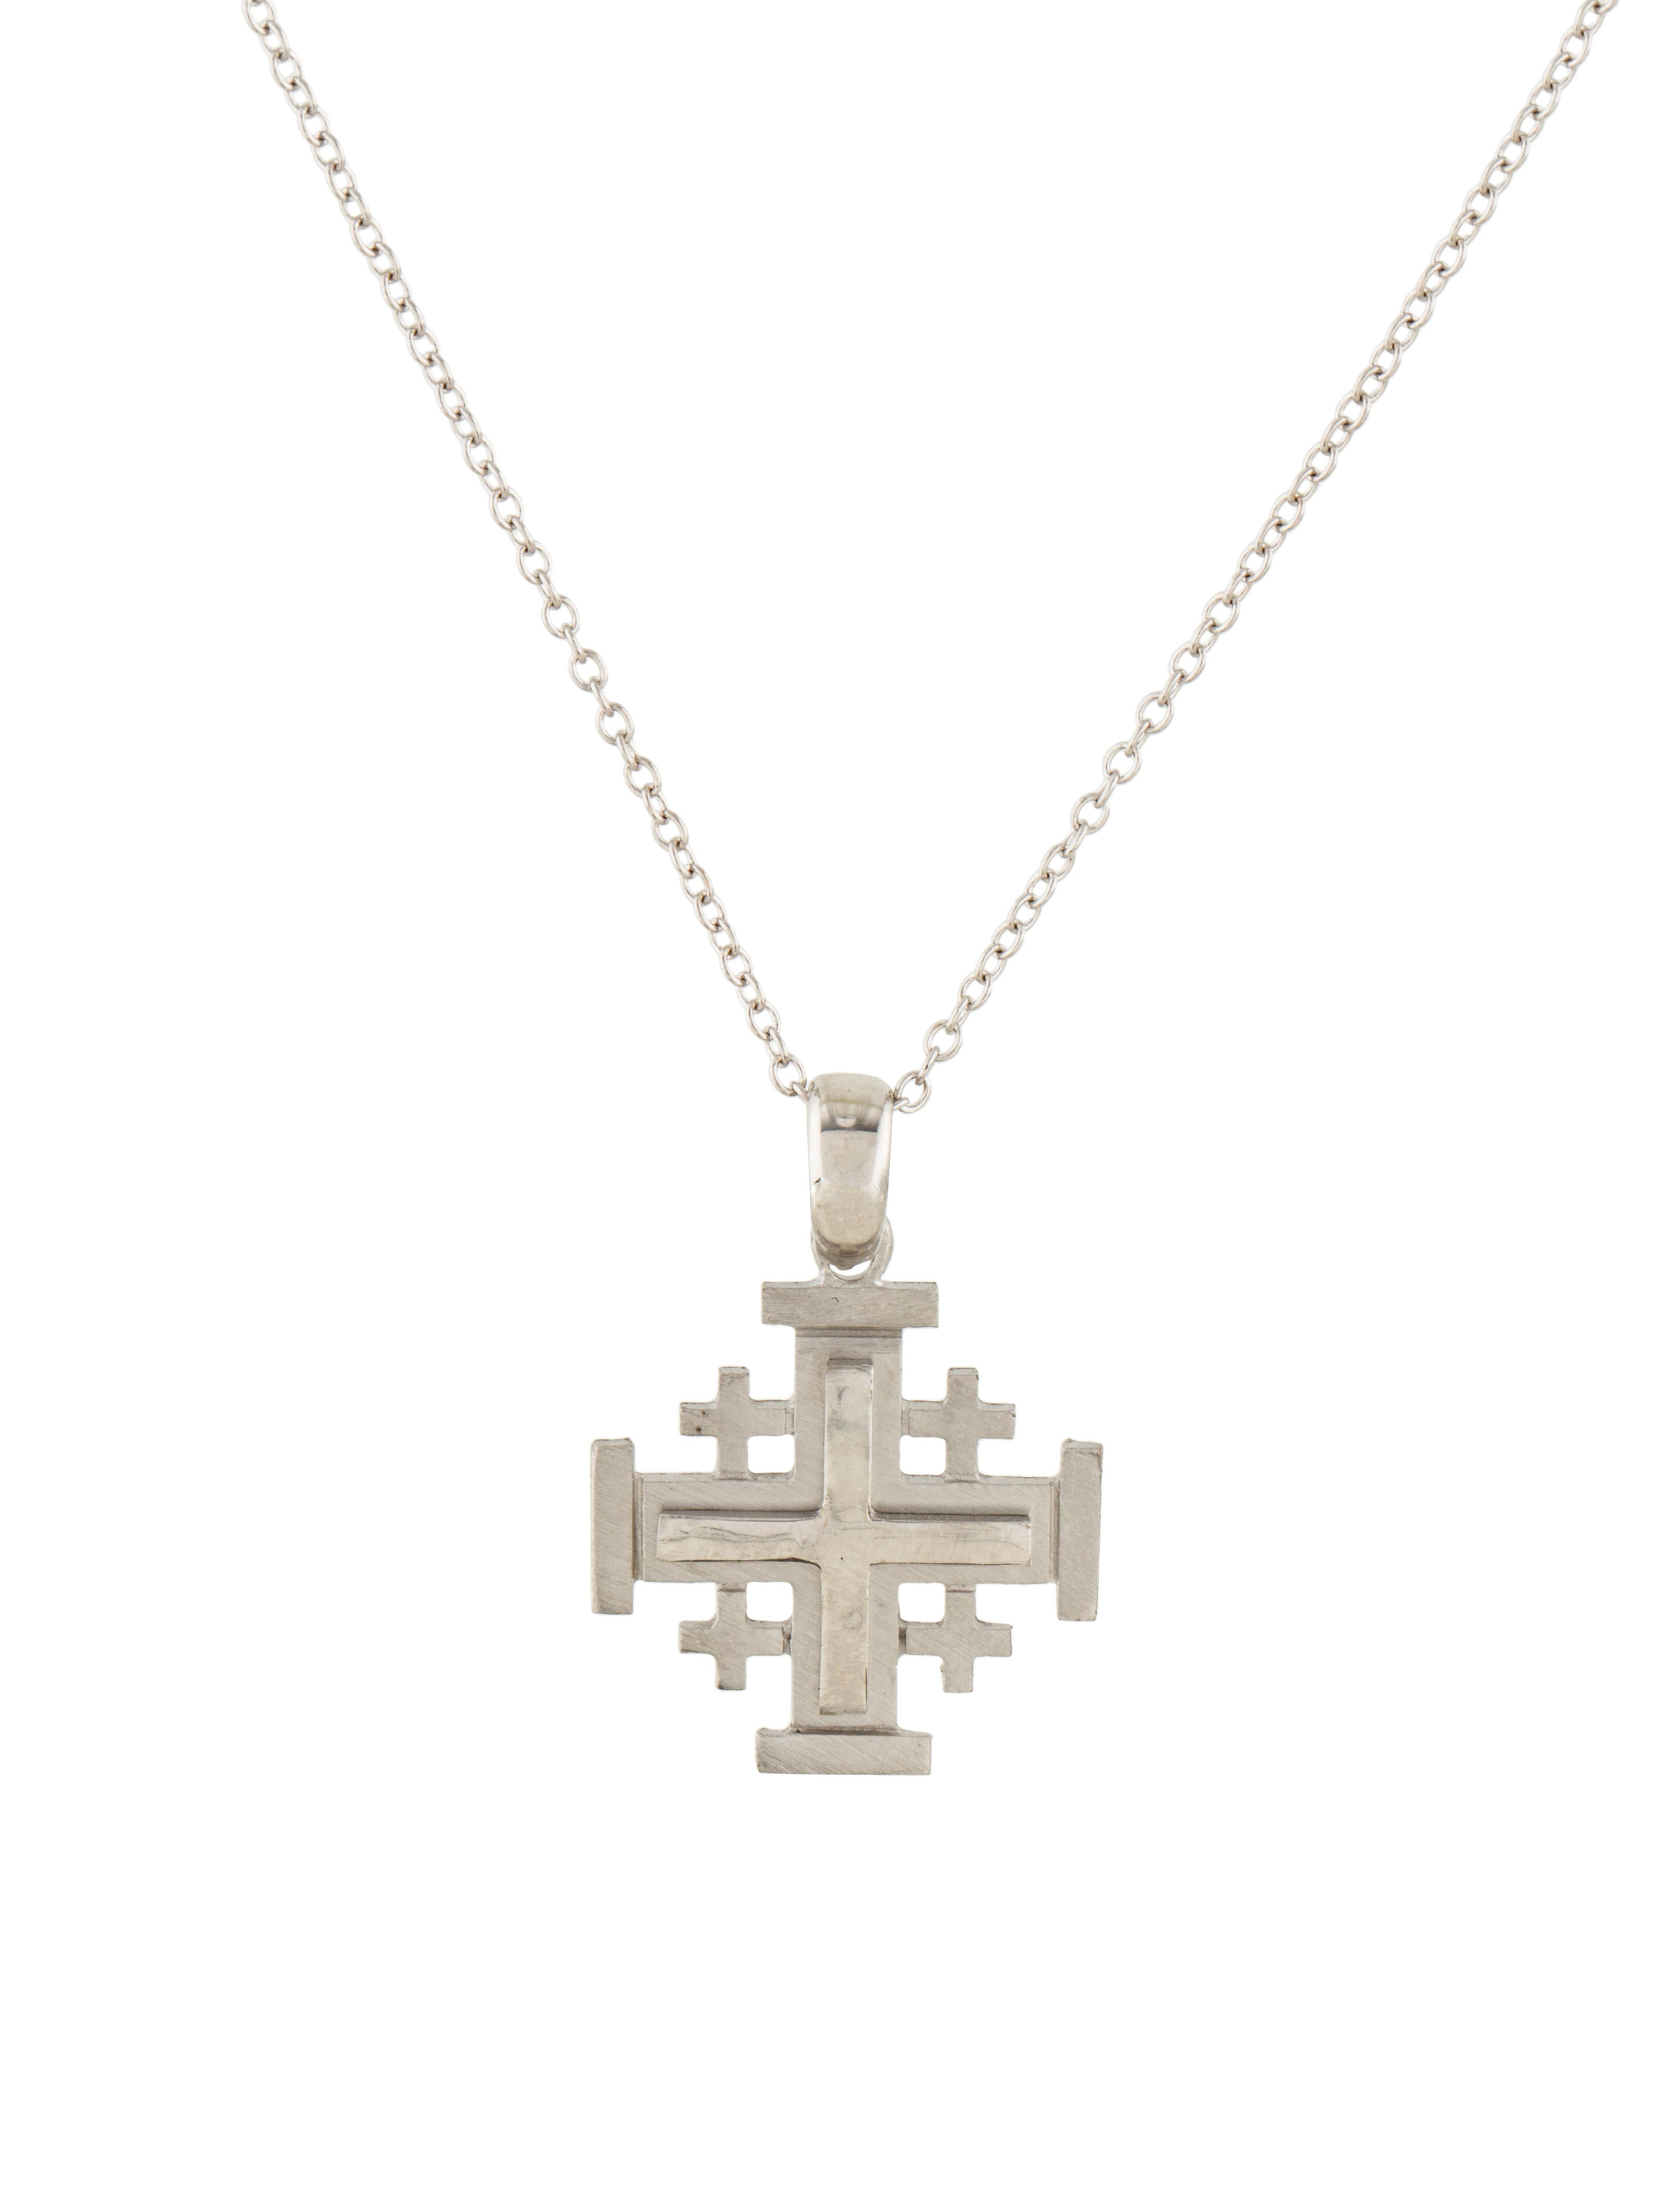 heavy jewelry christianity products l with handmade chain sterling pendant jerusalem il middle a fullxfull shipping silver it two eastern fast tone cross